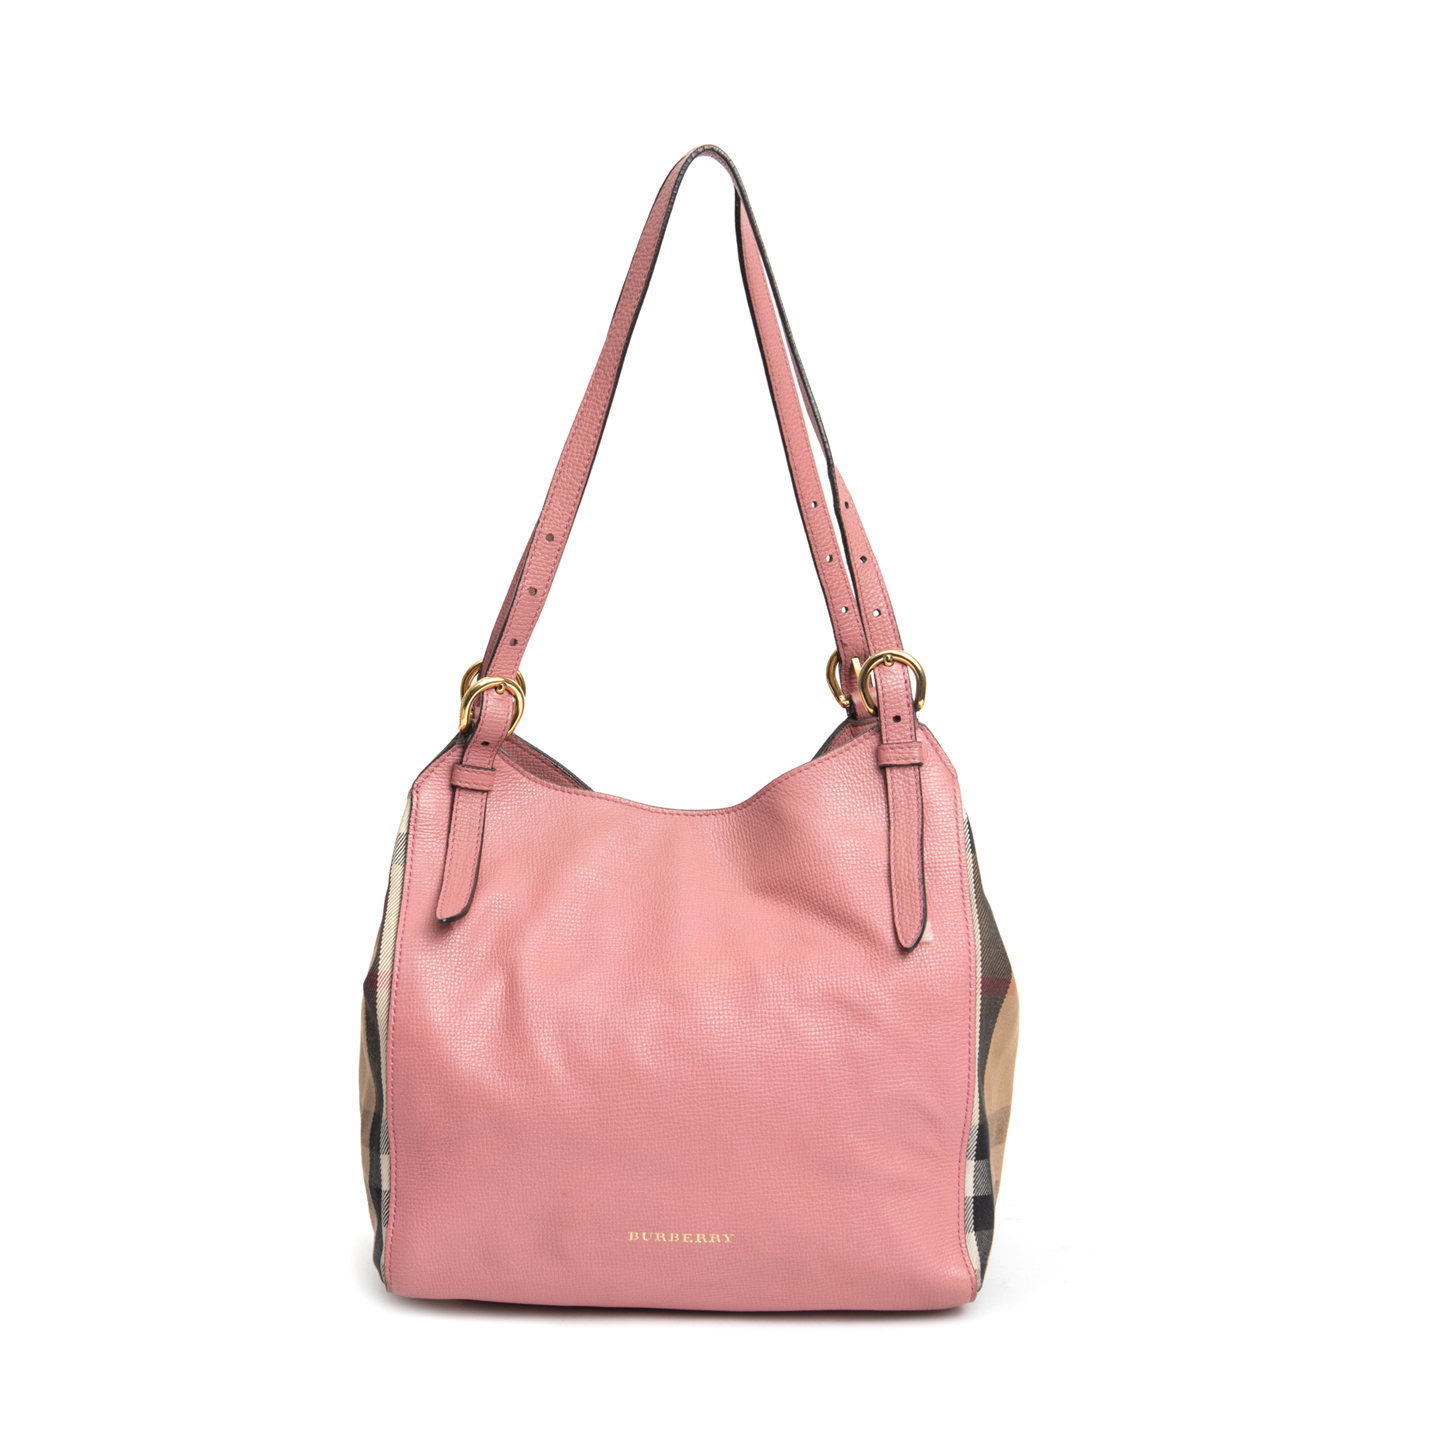 cbdb2af9350e ... Burberry Pale Orchid Leather and House Check Small Canter Bag ...